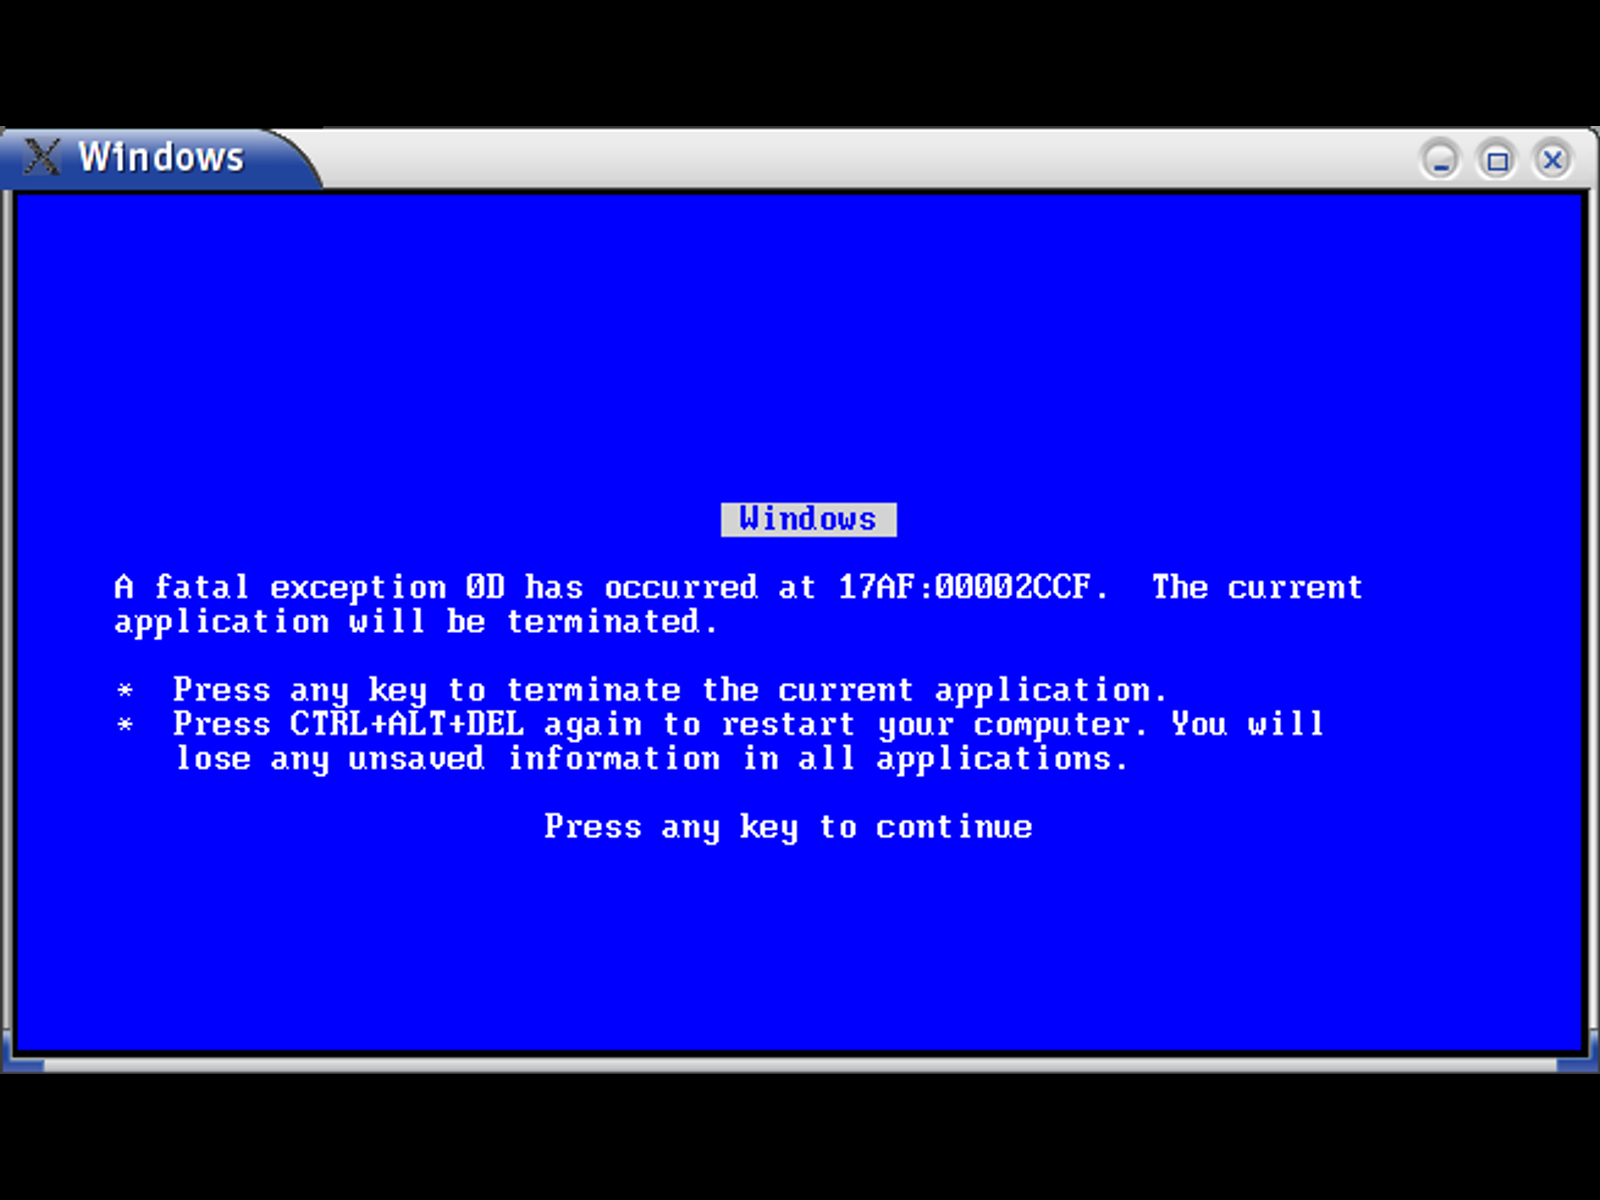 Windows 7 First Boot | The Smell of Molten Projects in the